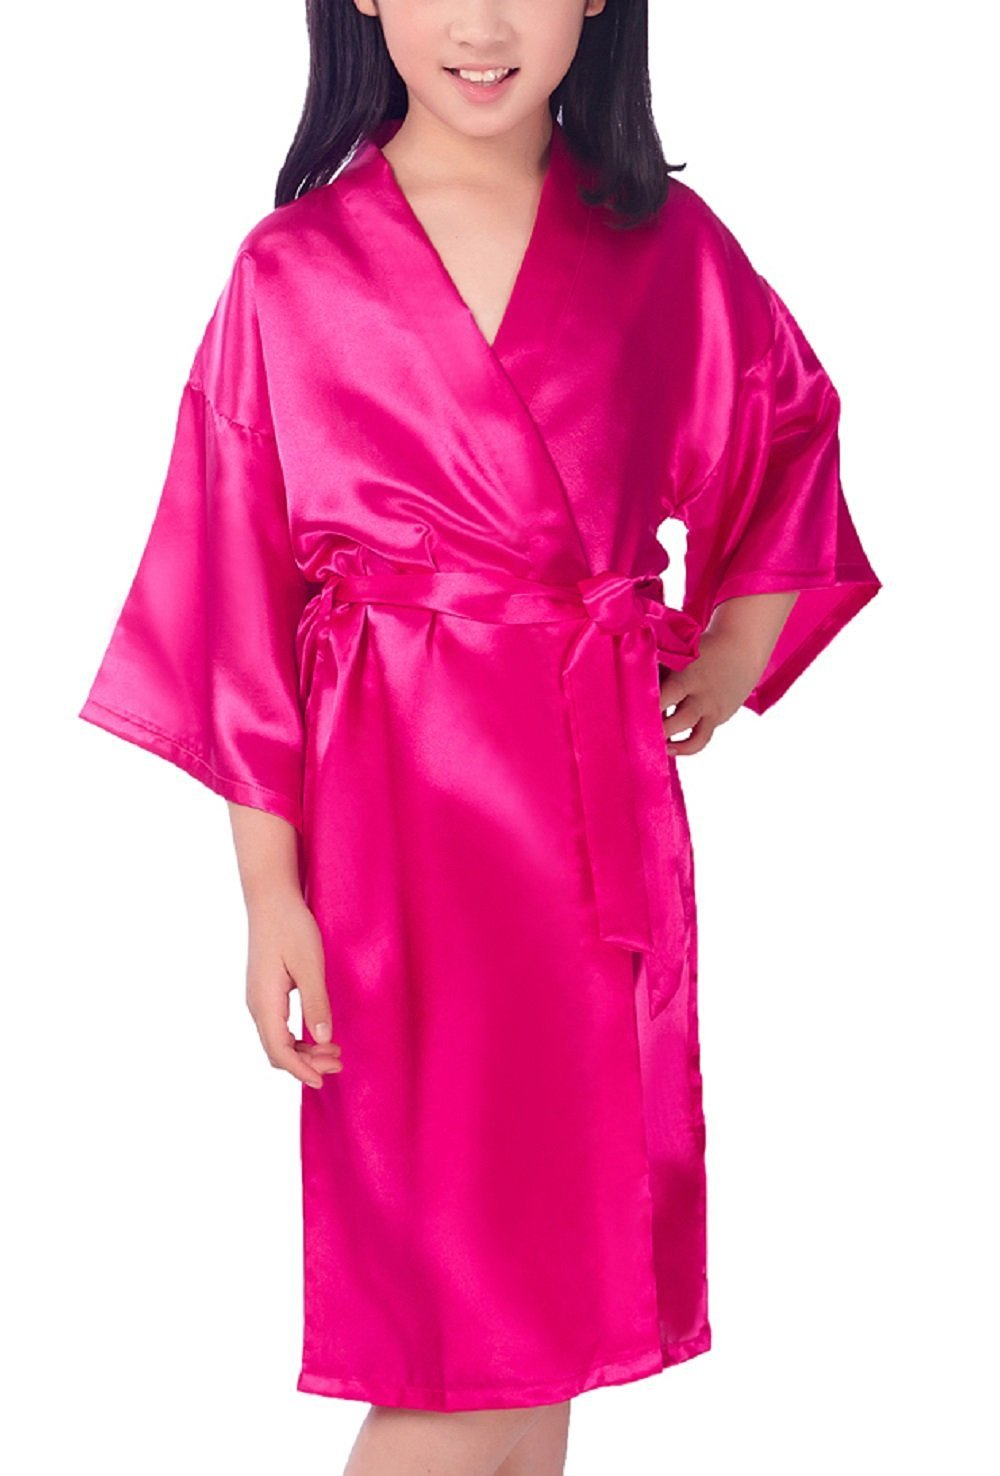 Admireme Kids' Satin Kimono Robe Bathrobe Nightgown For Spa Party Wedding Birthday